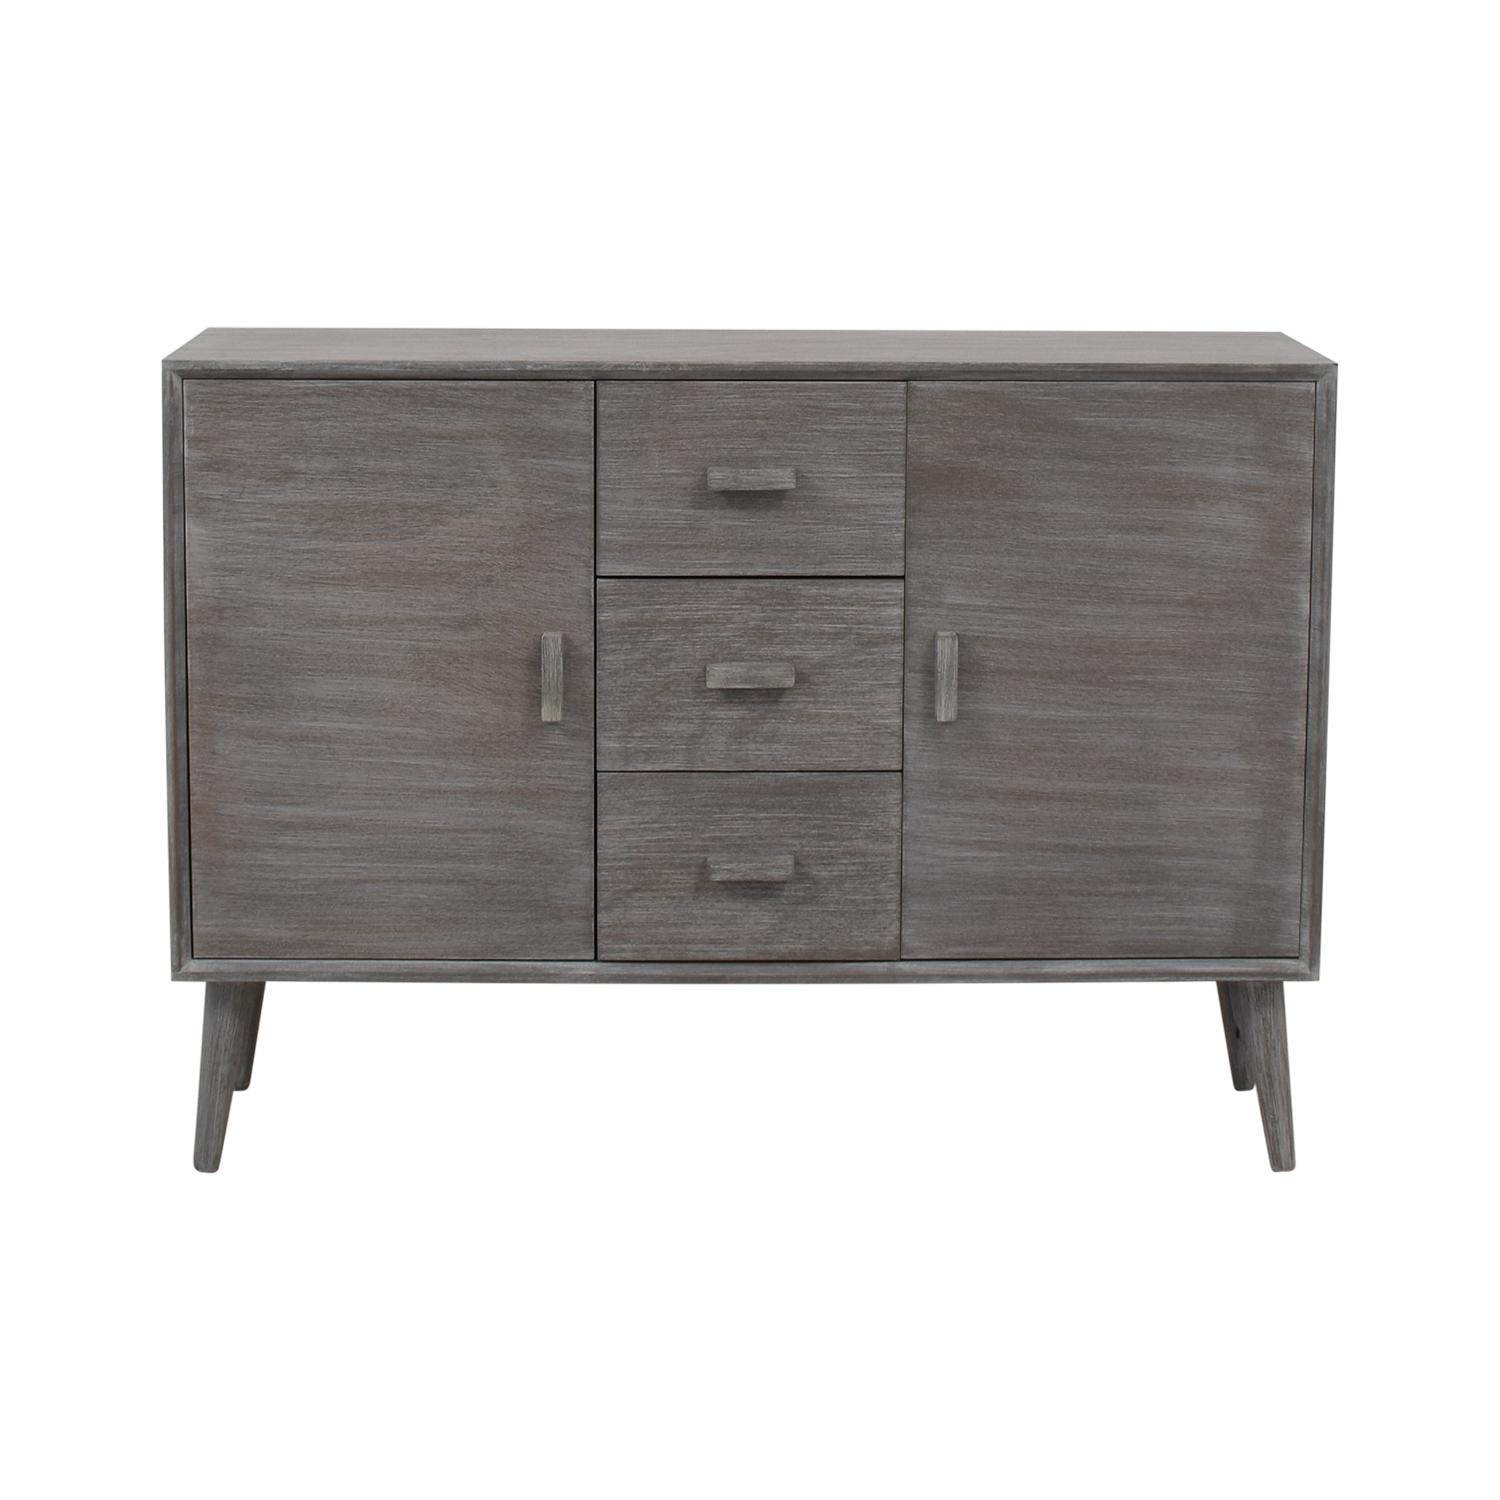 Grey Cabinet with Three Drawers Storage